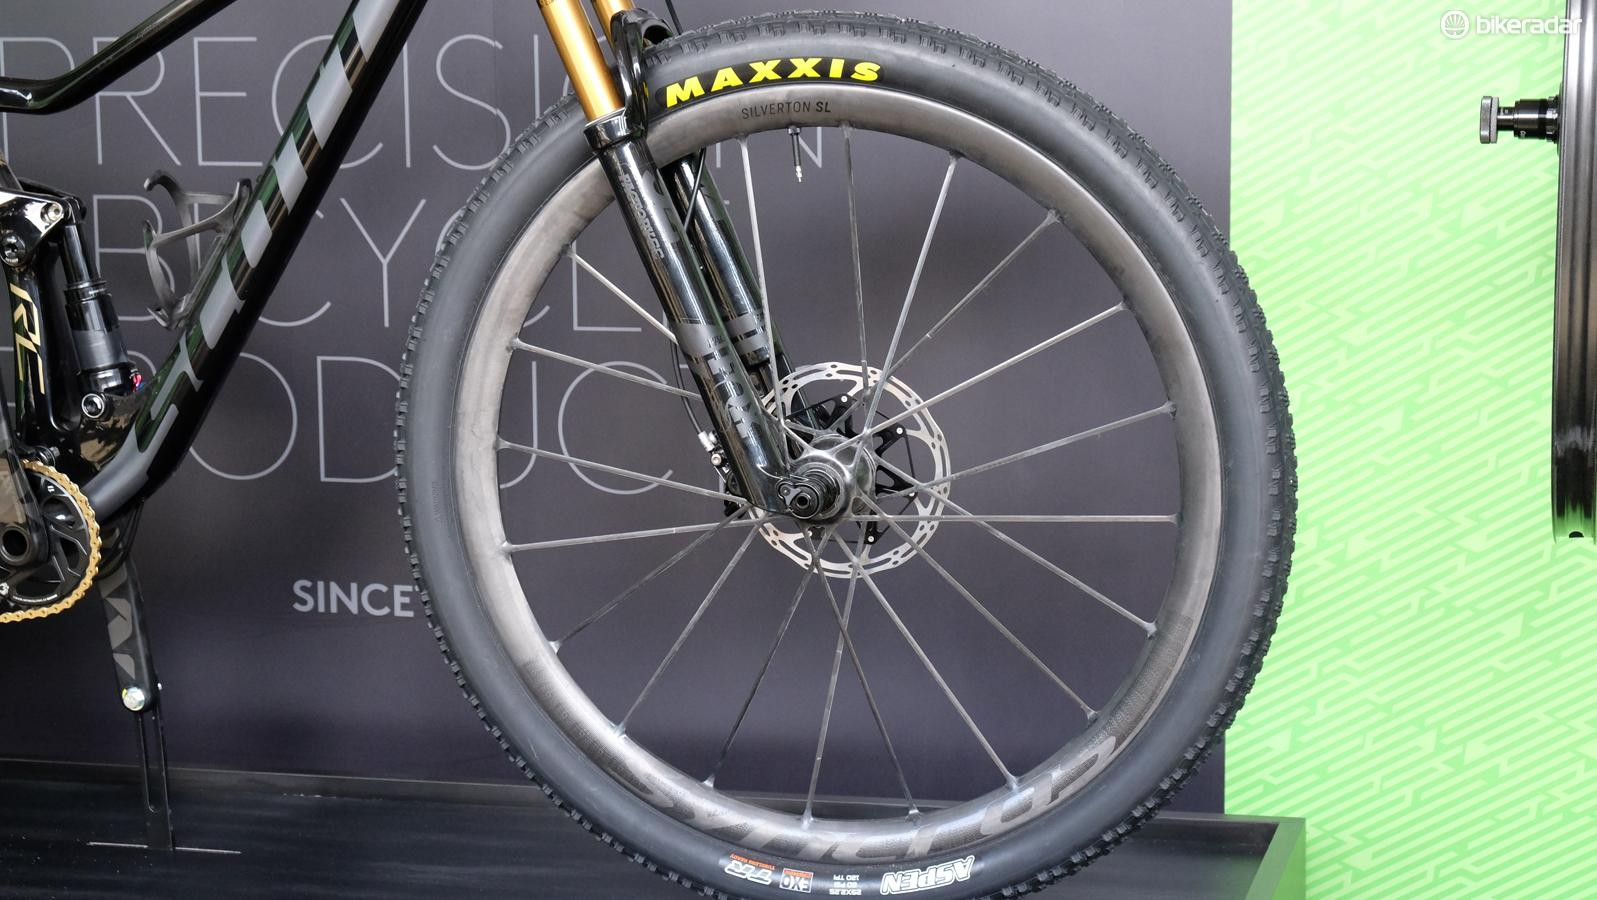 The Silverton SL weighs in at just 1,250g (claimed) for the 29-inch set of full carbon wheels